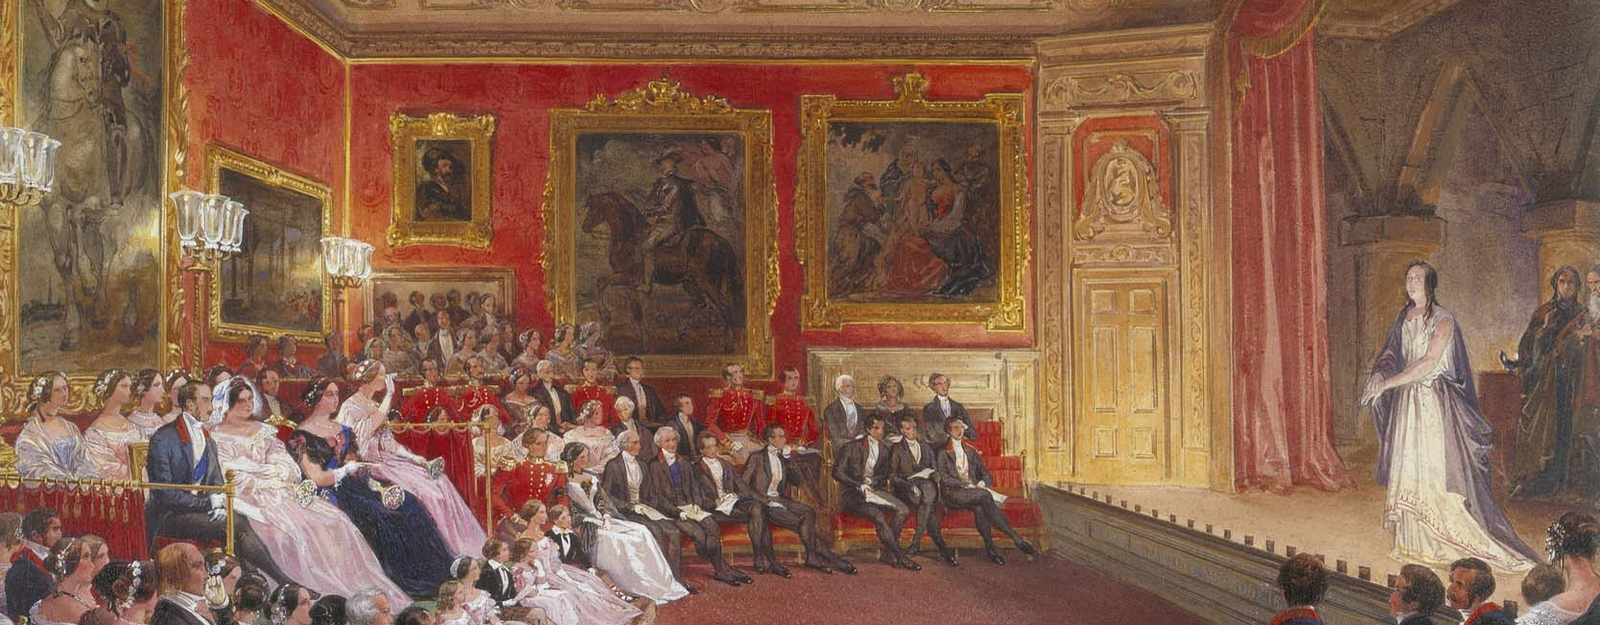 Watercolour of Queen Victoria watching a performance of Macbeth